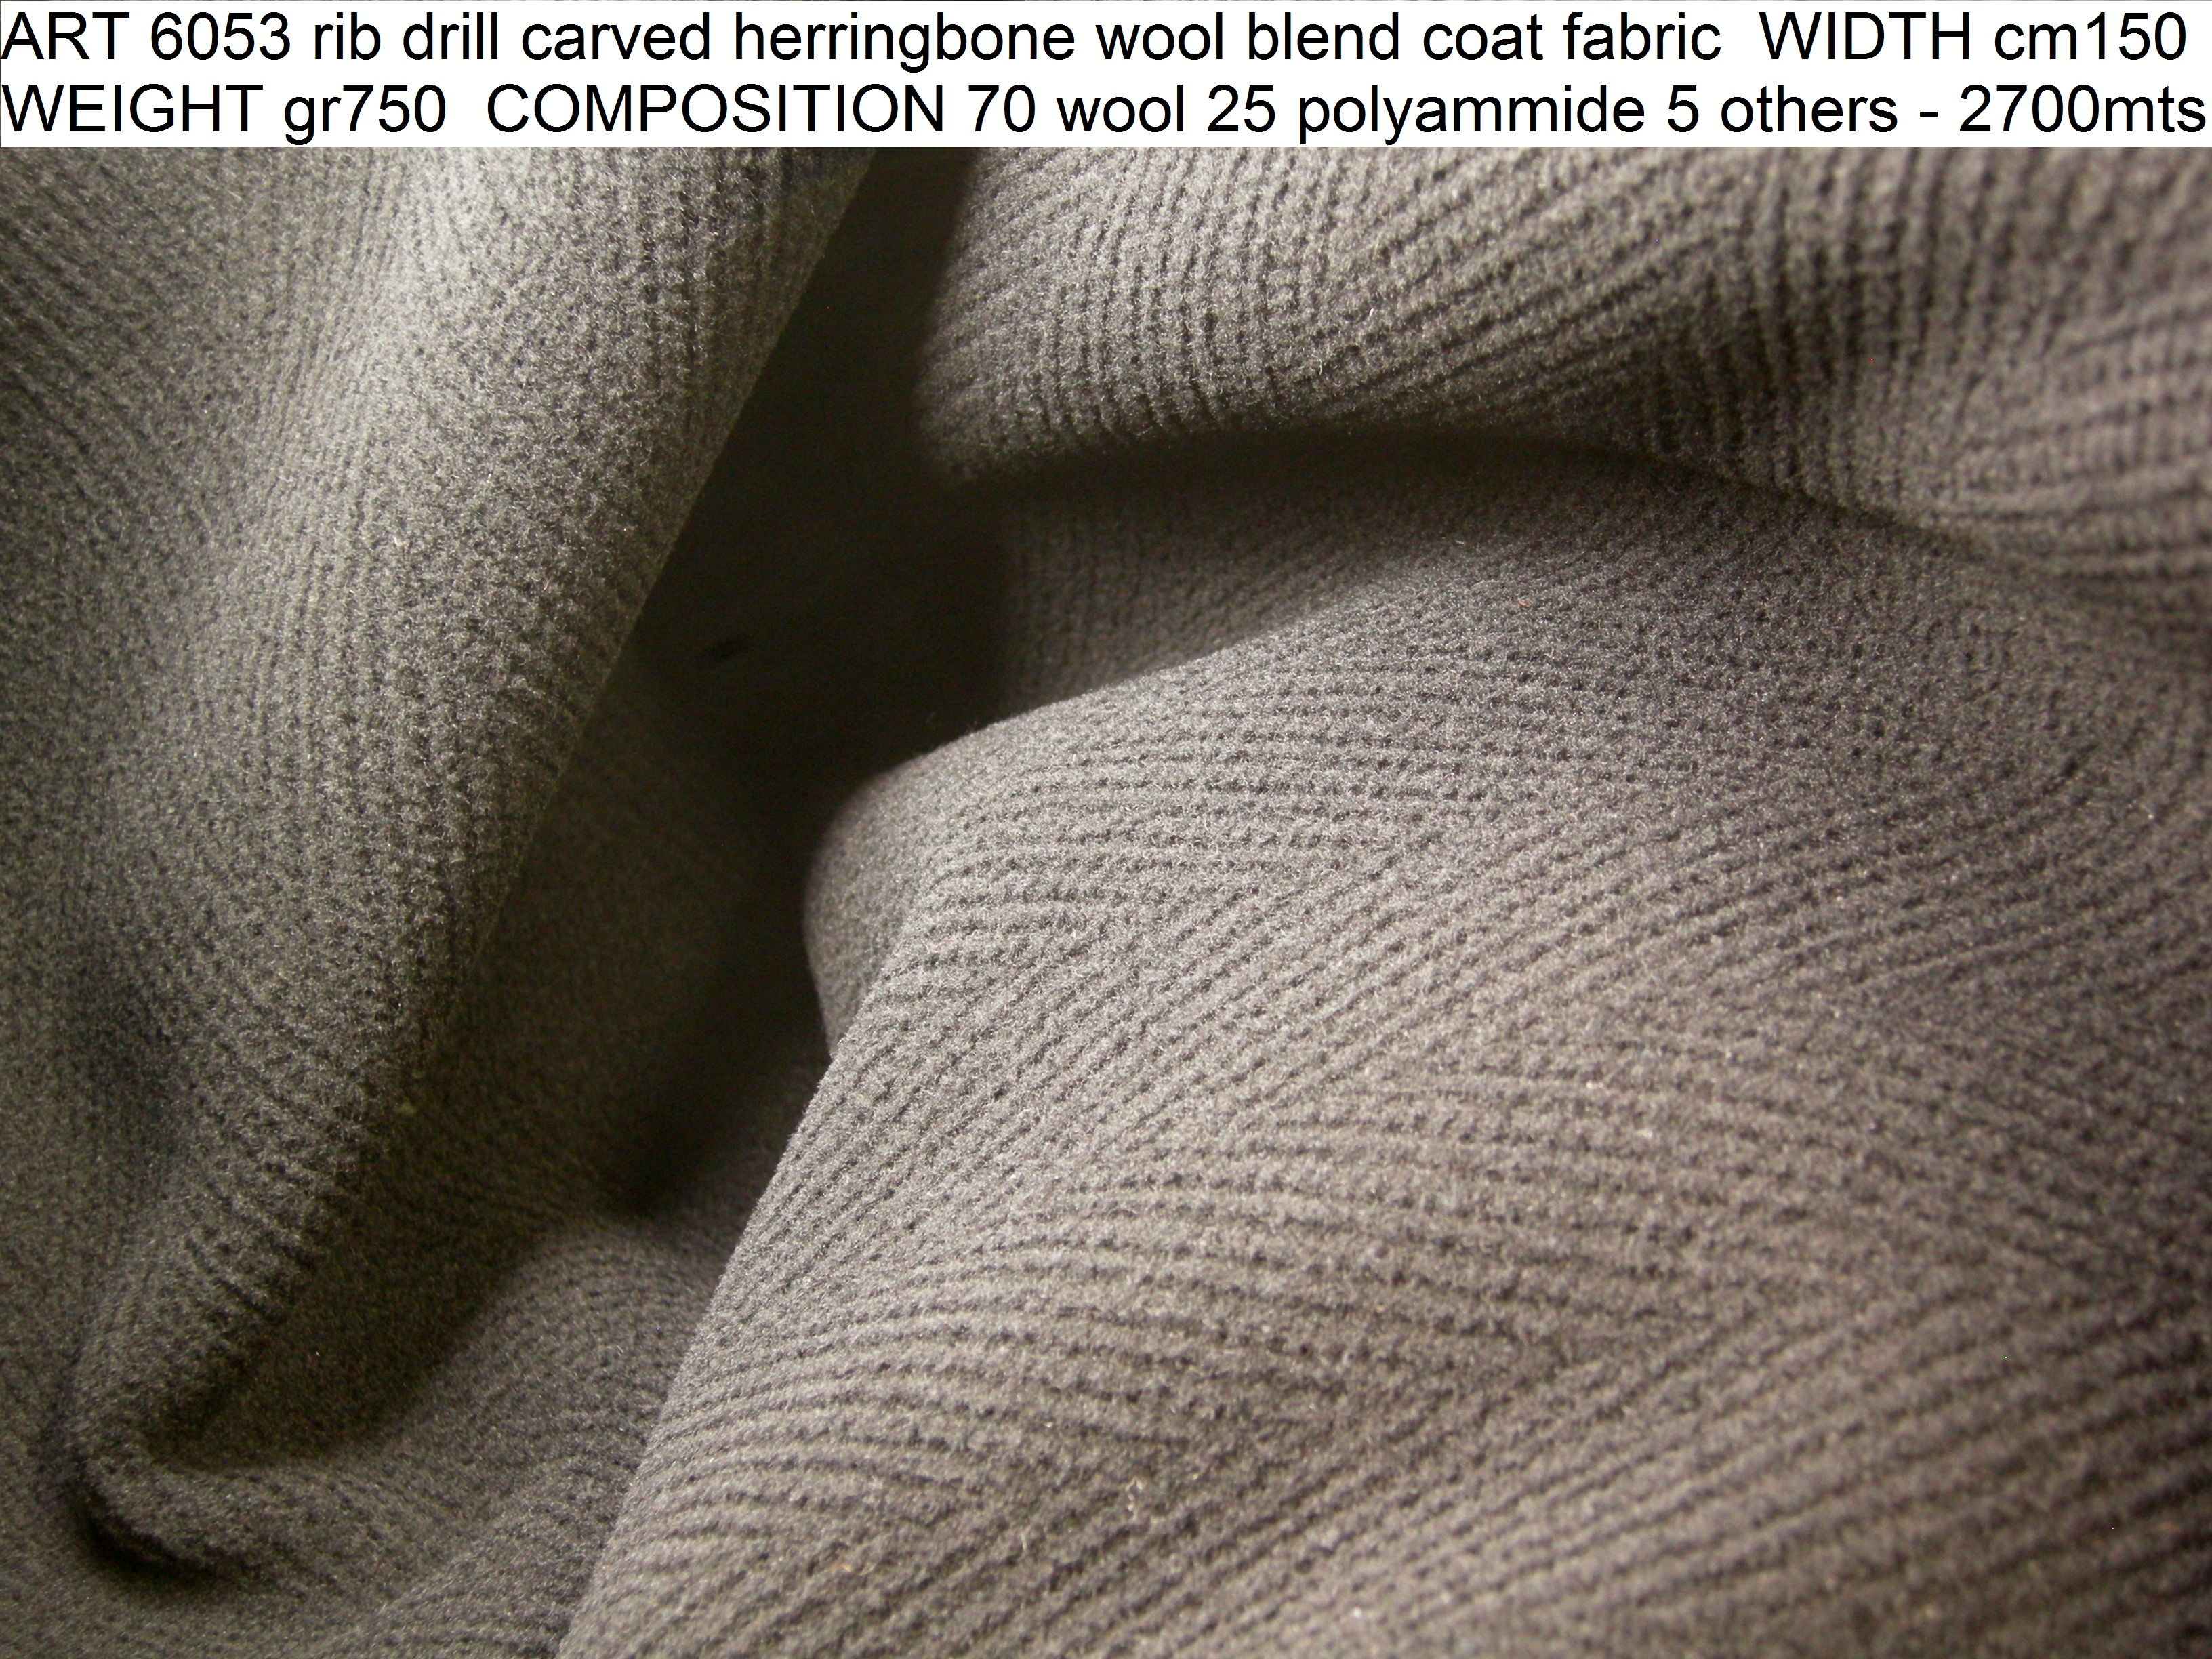 ART 6053 rib drill carved herringbone wool blend coat fabric WIDTH cm150 WEIGHT gr750 COMPOSITION 70 wool 25 polyammide 5 others - 2700mts